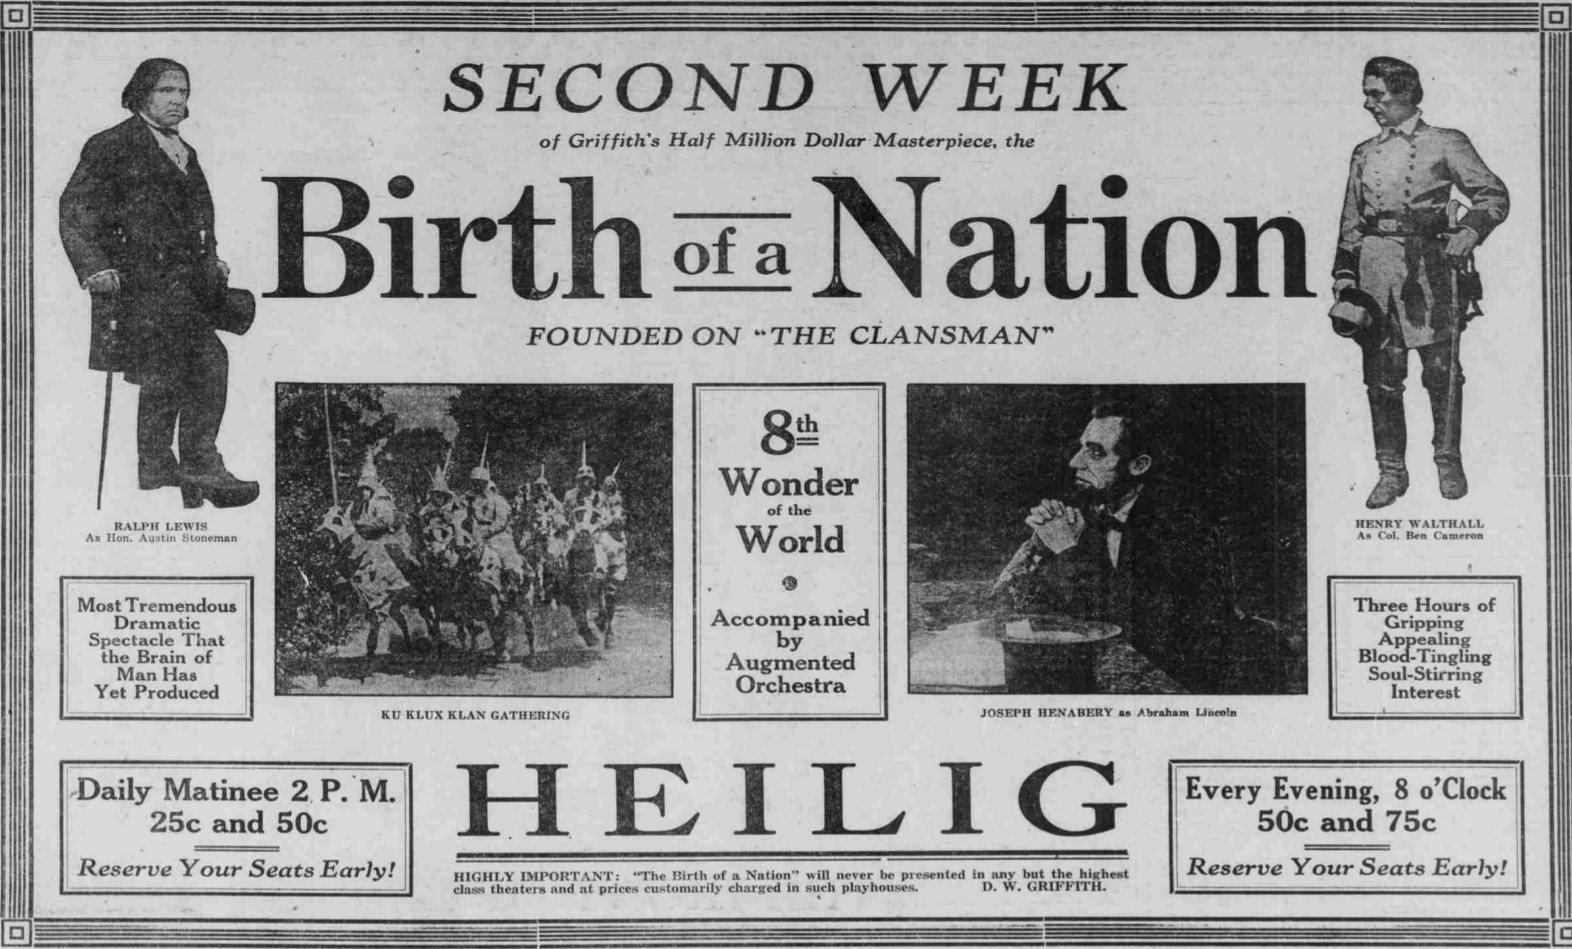 birth of a nation ad